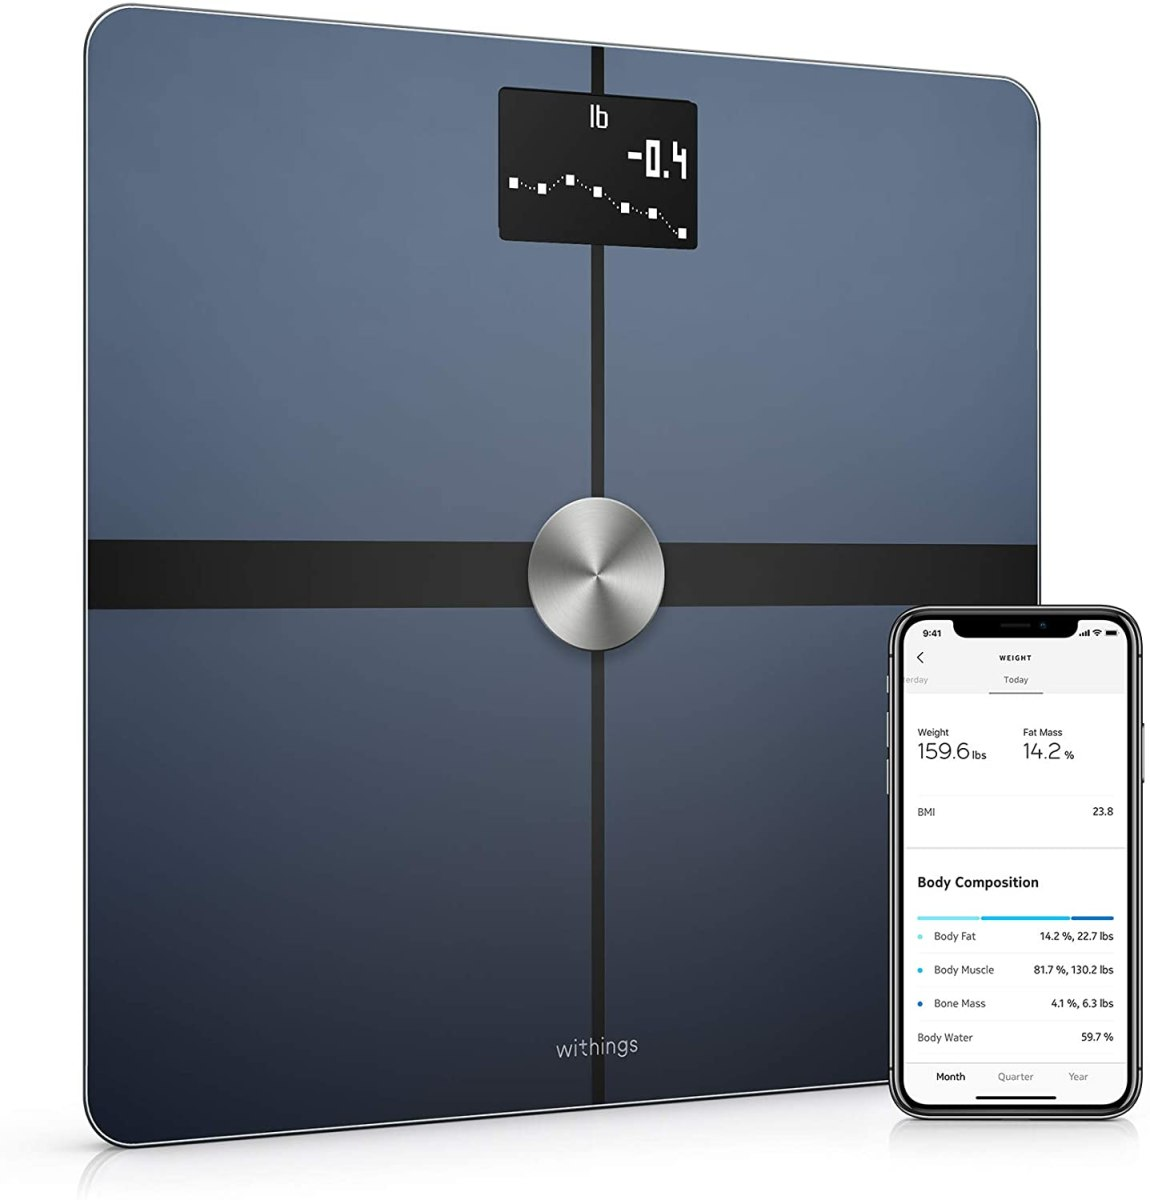 I prefer my Withings Body+ scale over an old FitBit Aria | Boing Boing